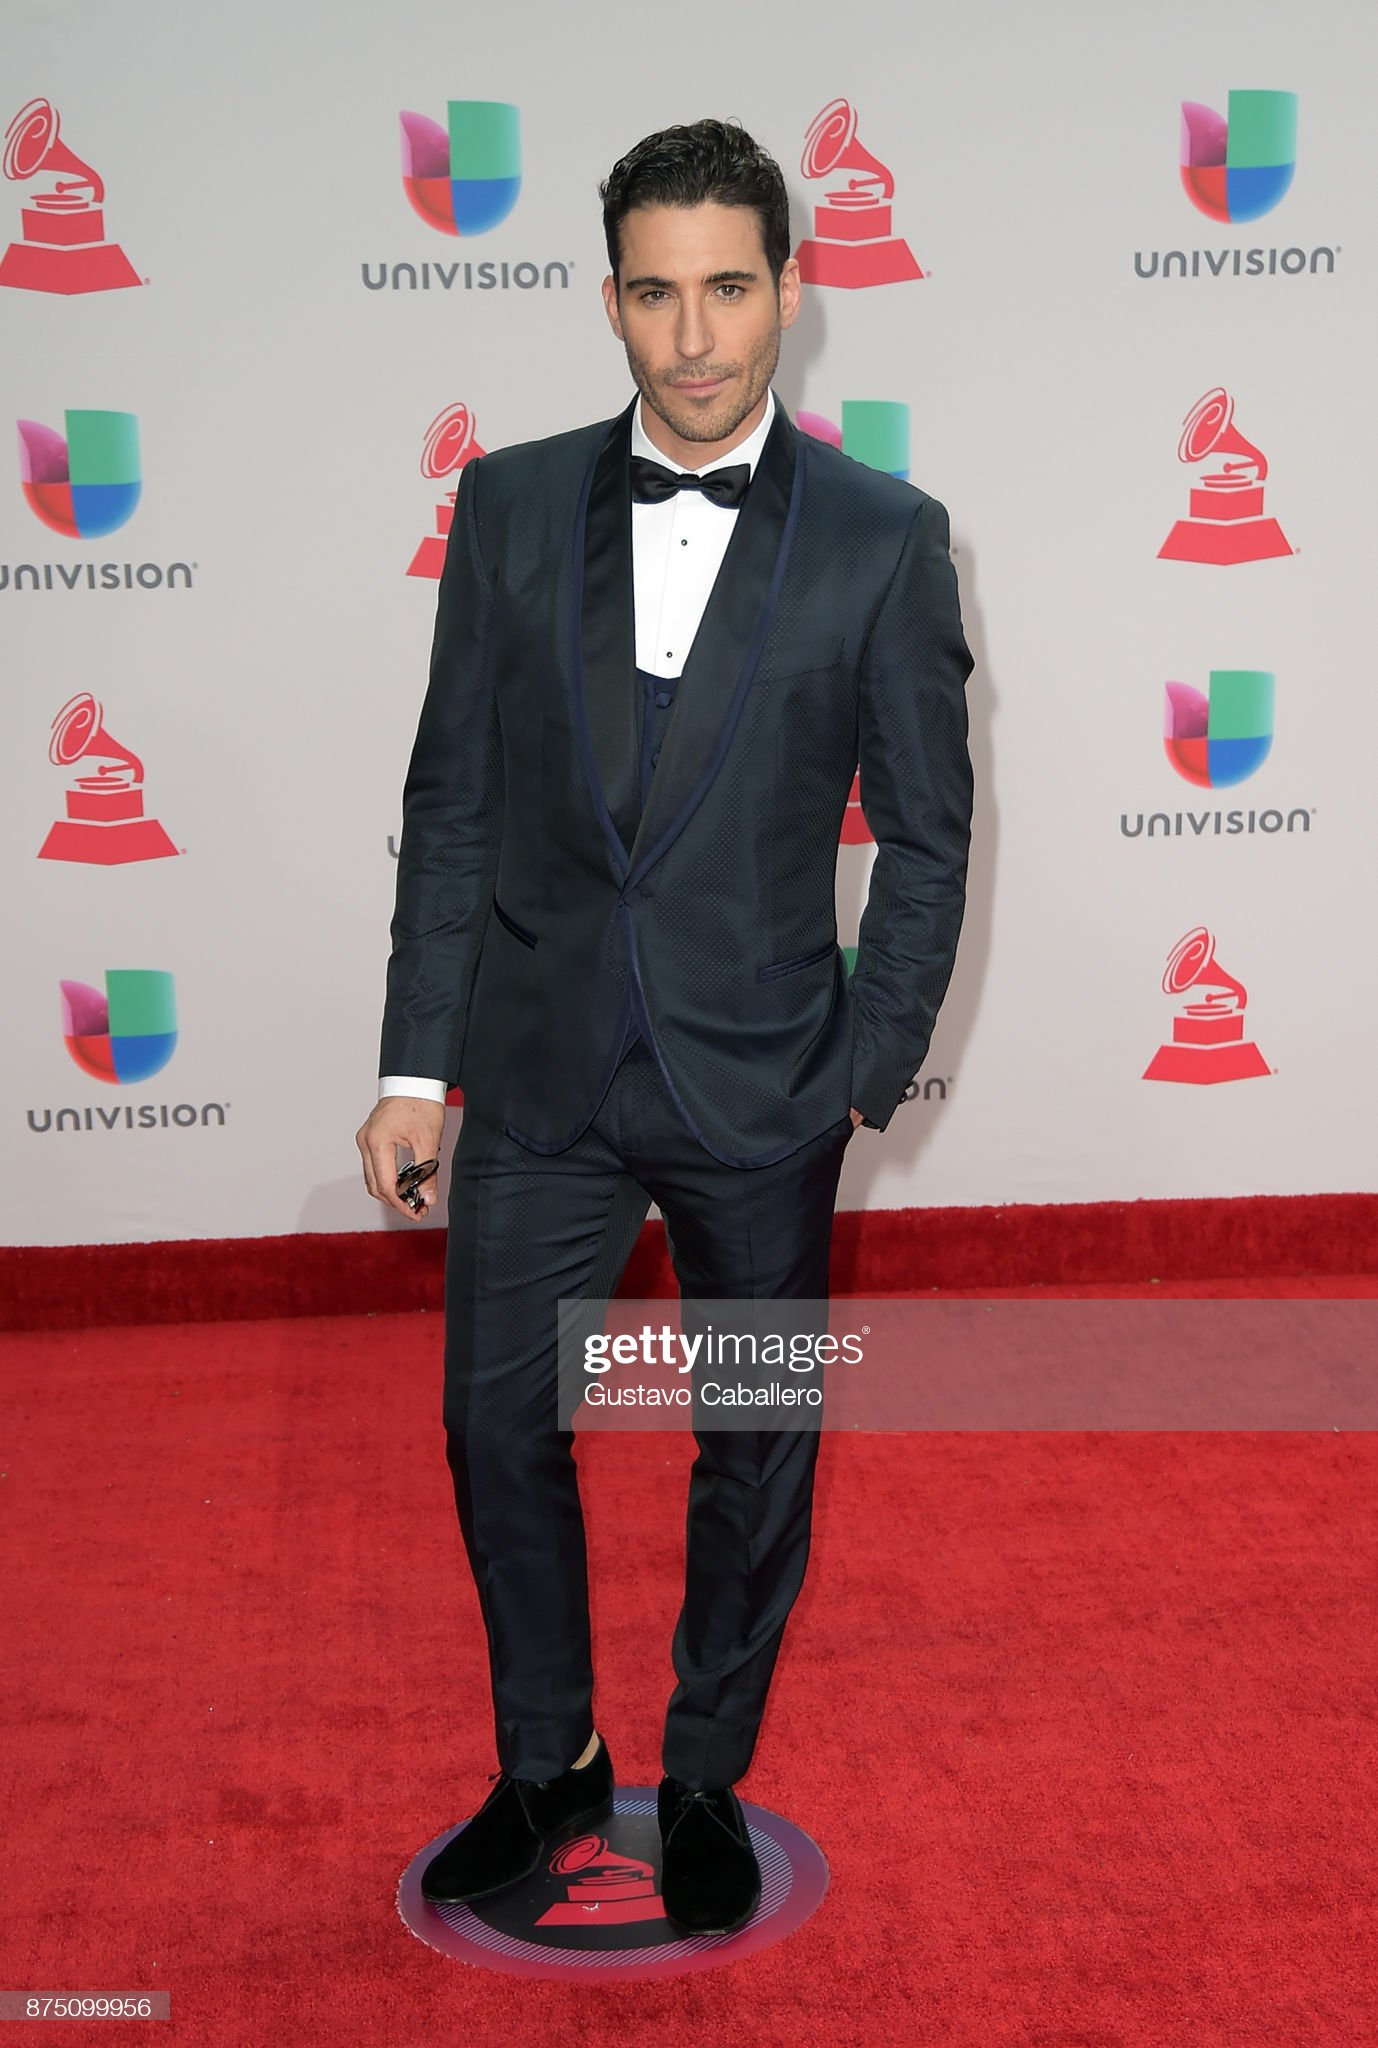 ¿Cuánto mide Miguel Ángel Silvestre? - Altura - Real height Miguel-angel-silvestre-attends-the-18th-annual-latin-grammy-awards-at-picture-id875099956?s=2048x2048